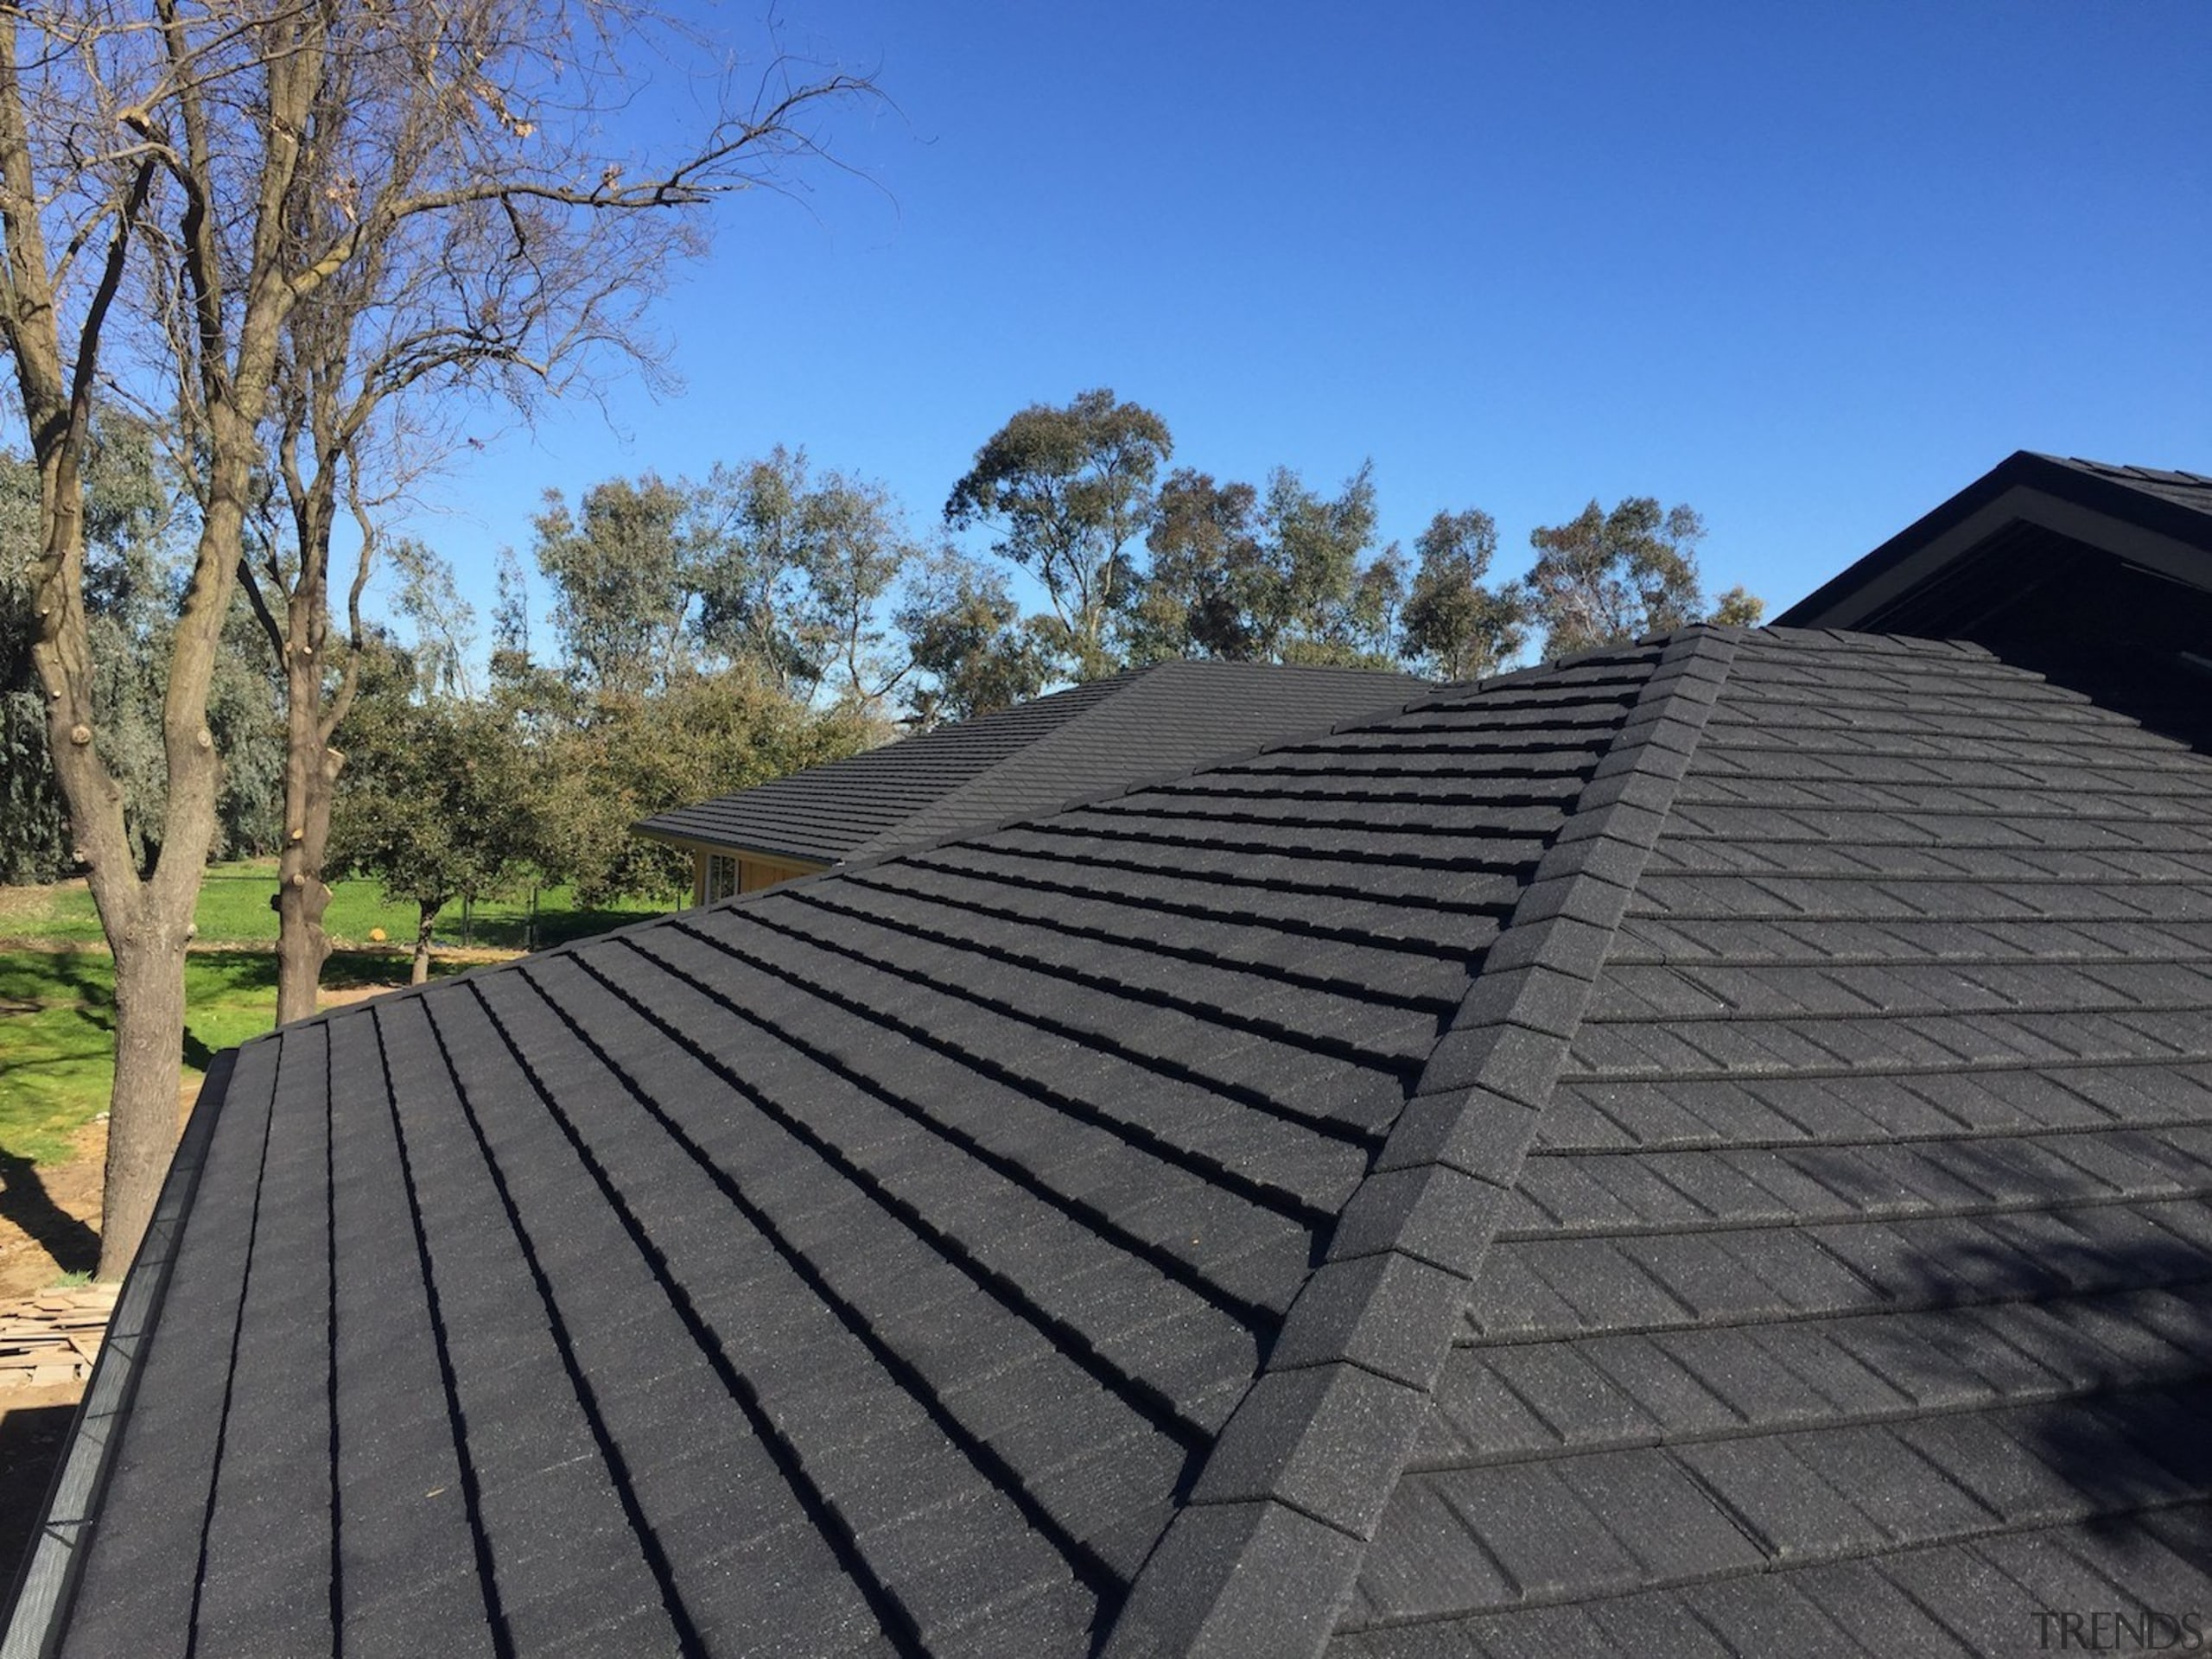 A brand new roof - daylighting   outdoor daylighting, outdoor structure, roof, roofer, sky, gray, black, blue